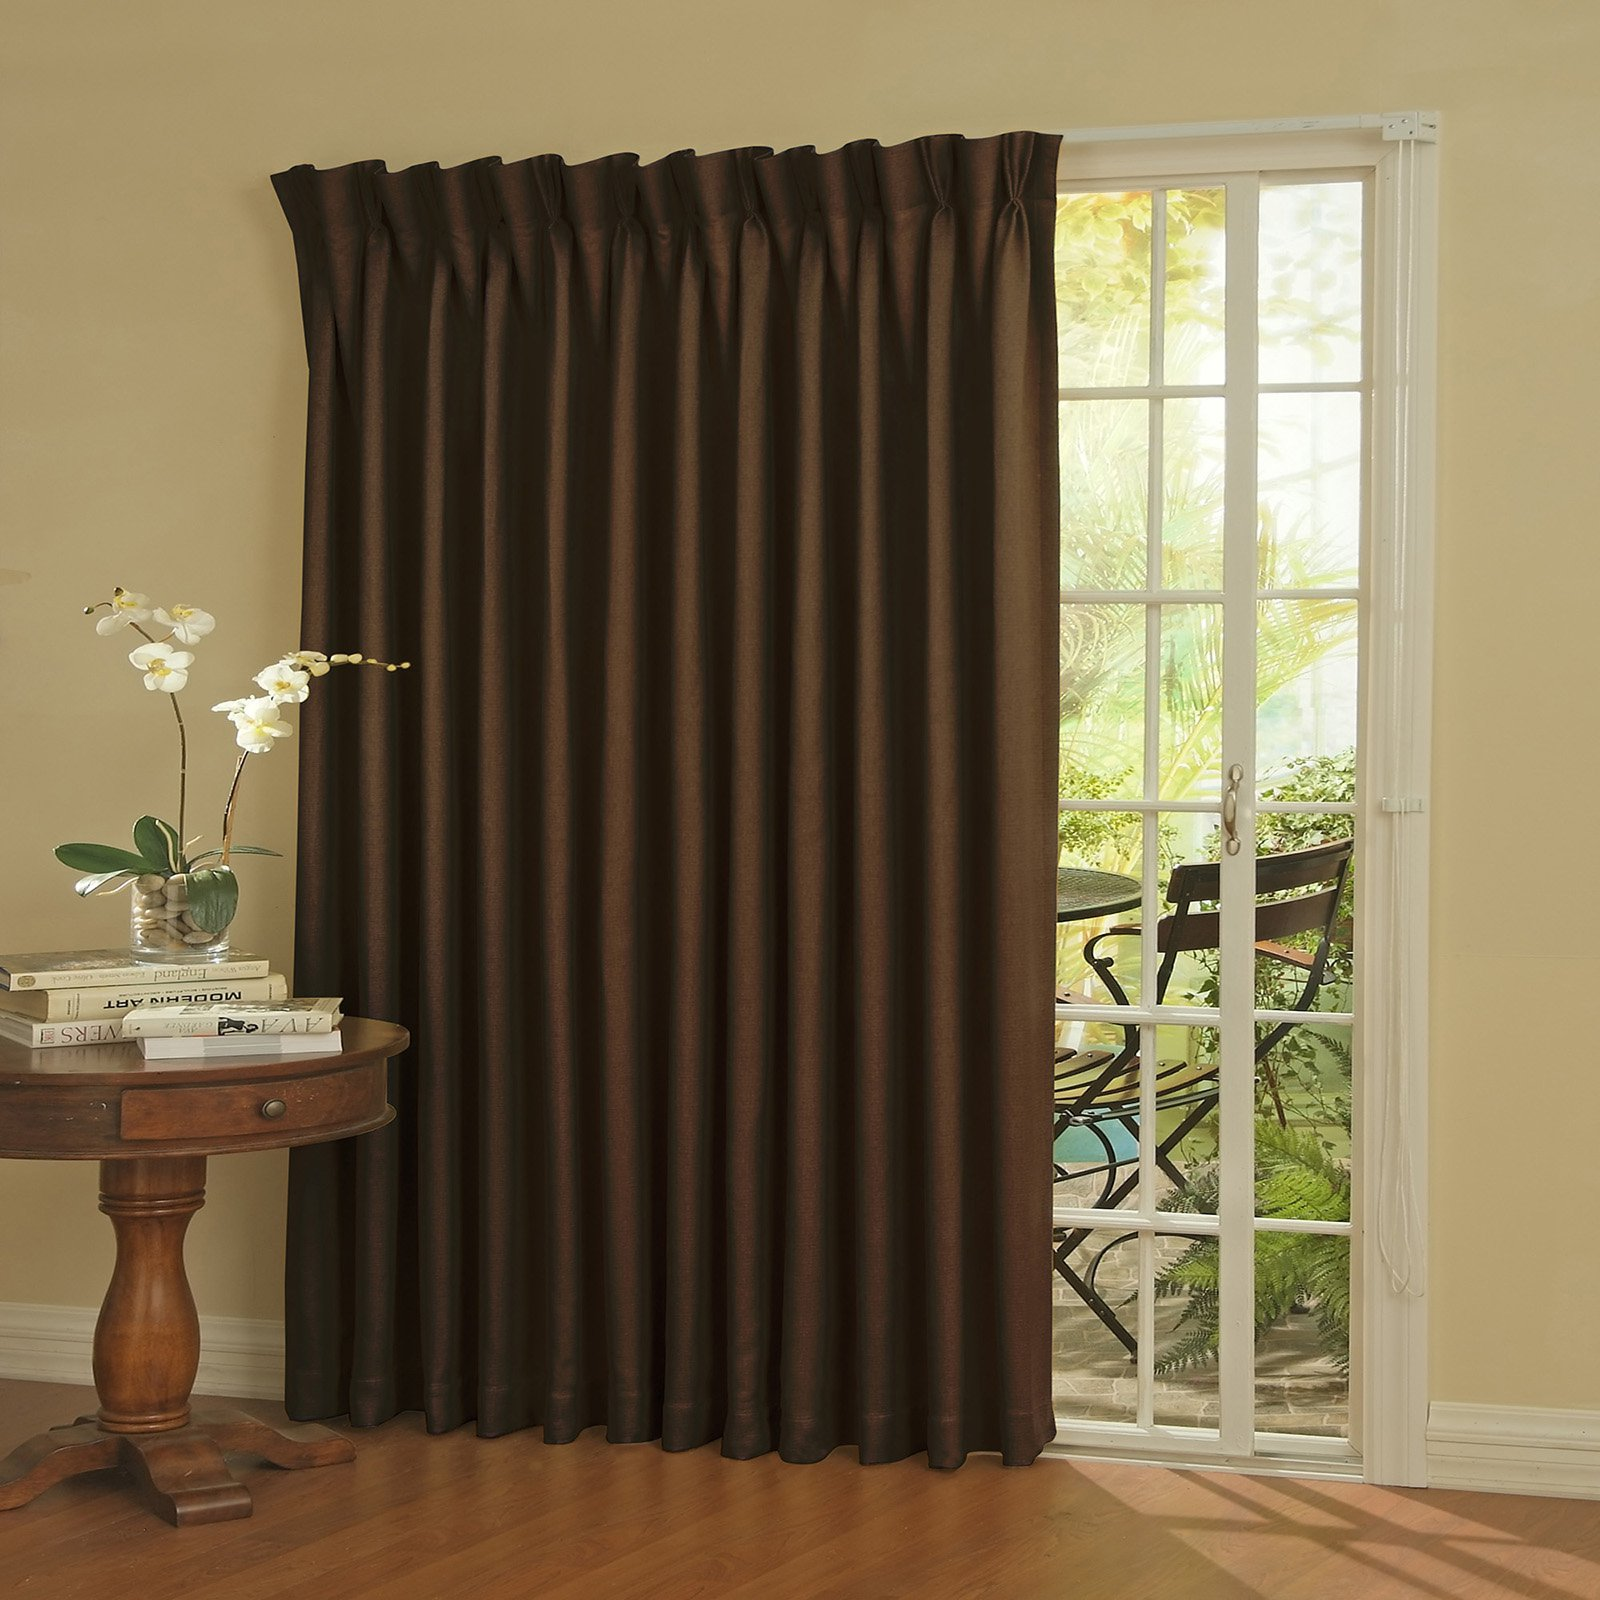 Eclipse Thermal Blackout Patio Door Curtain Panel by Ellery Holdings LLC